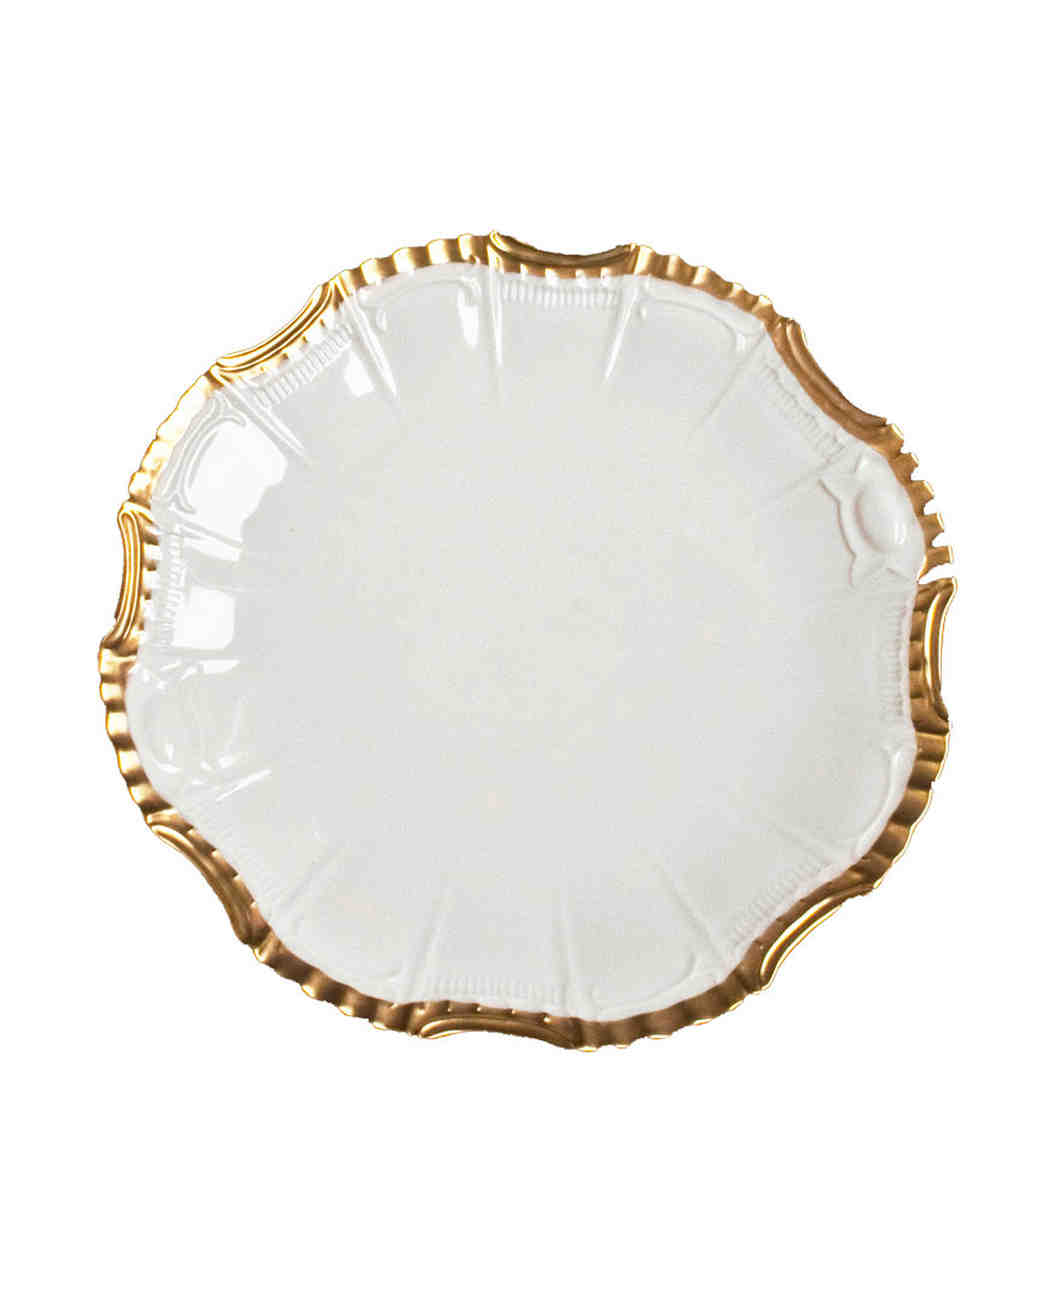 china-registry-luxe-anna-weatherley-golden-patina-star-plate-1014.jpg